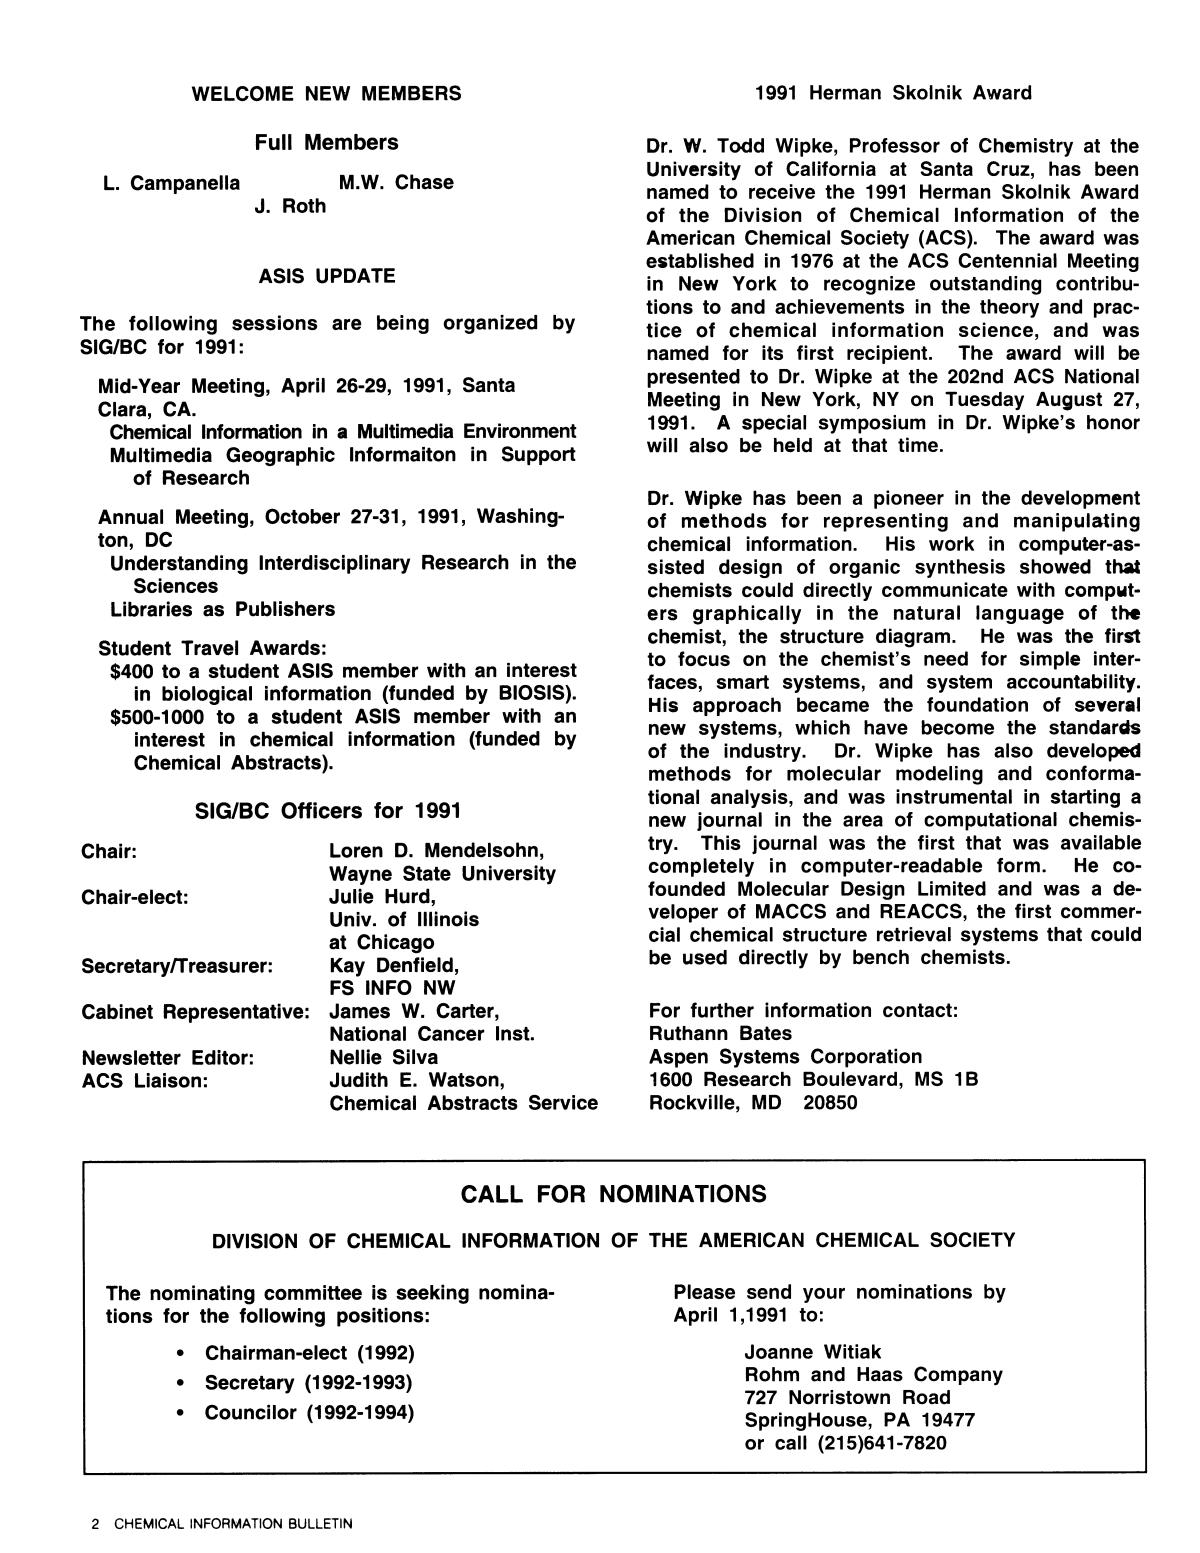 Chemical Information Bulletin, Volume 43, Number 1, Spring 1991                                                                                                      2